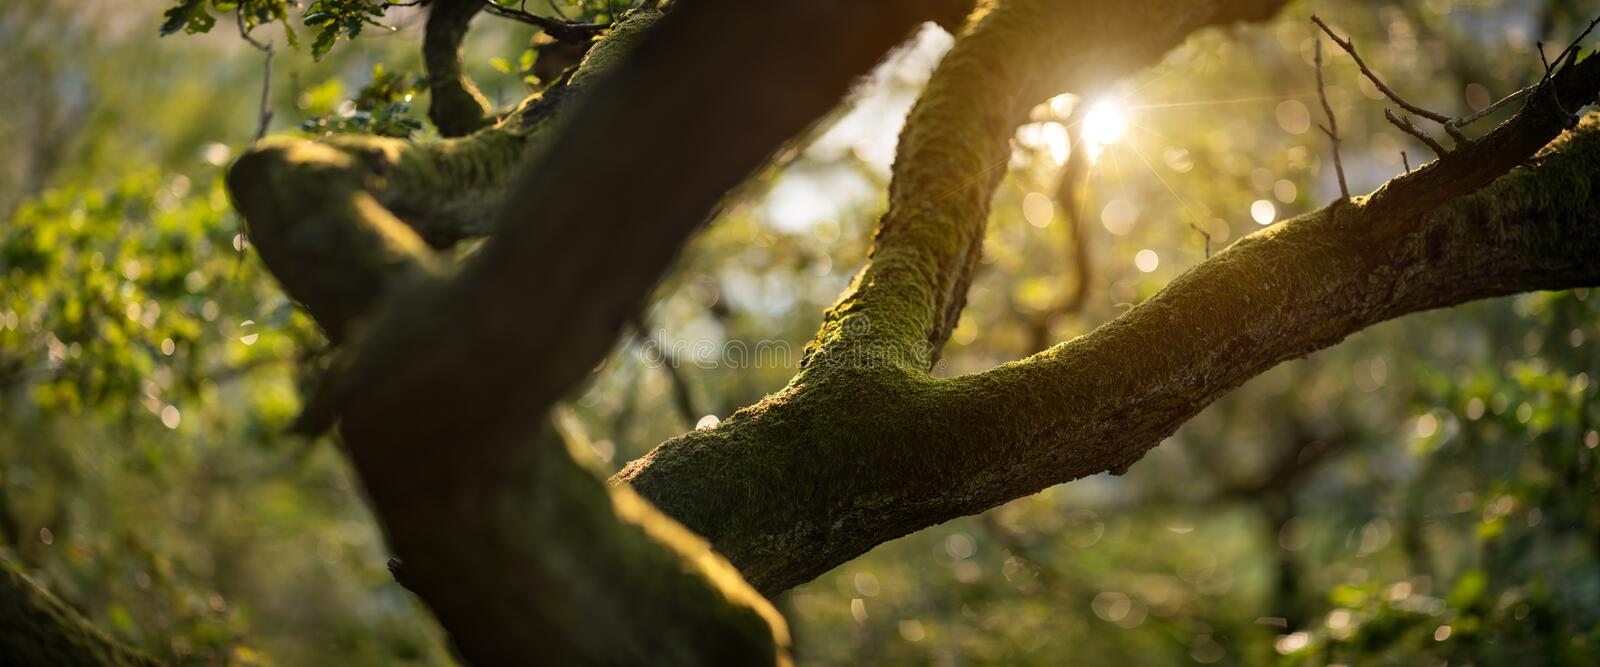 Panoramic shot of the moss covered branch royalty free stock photos